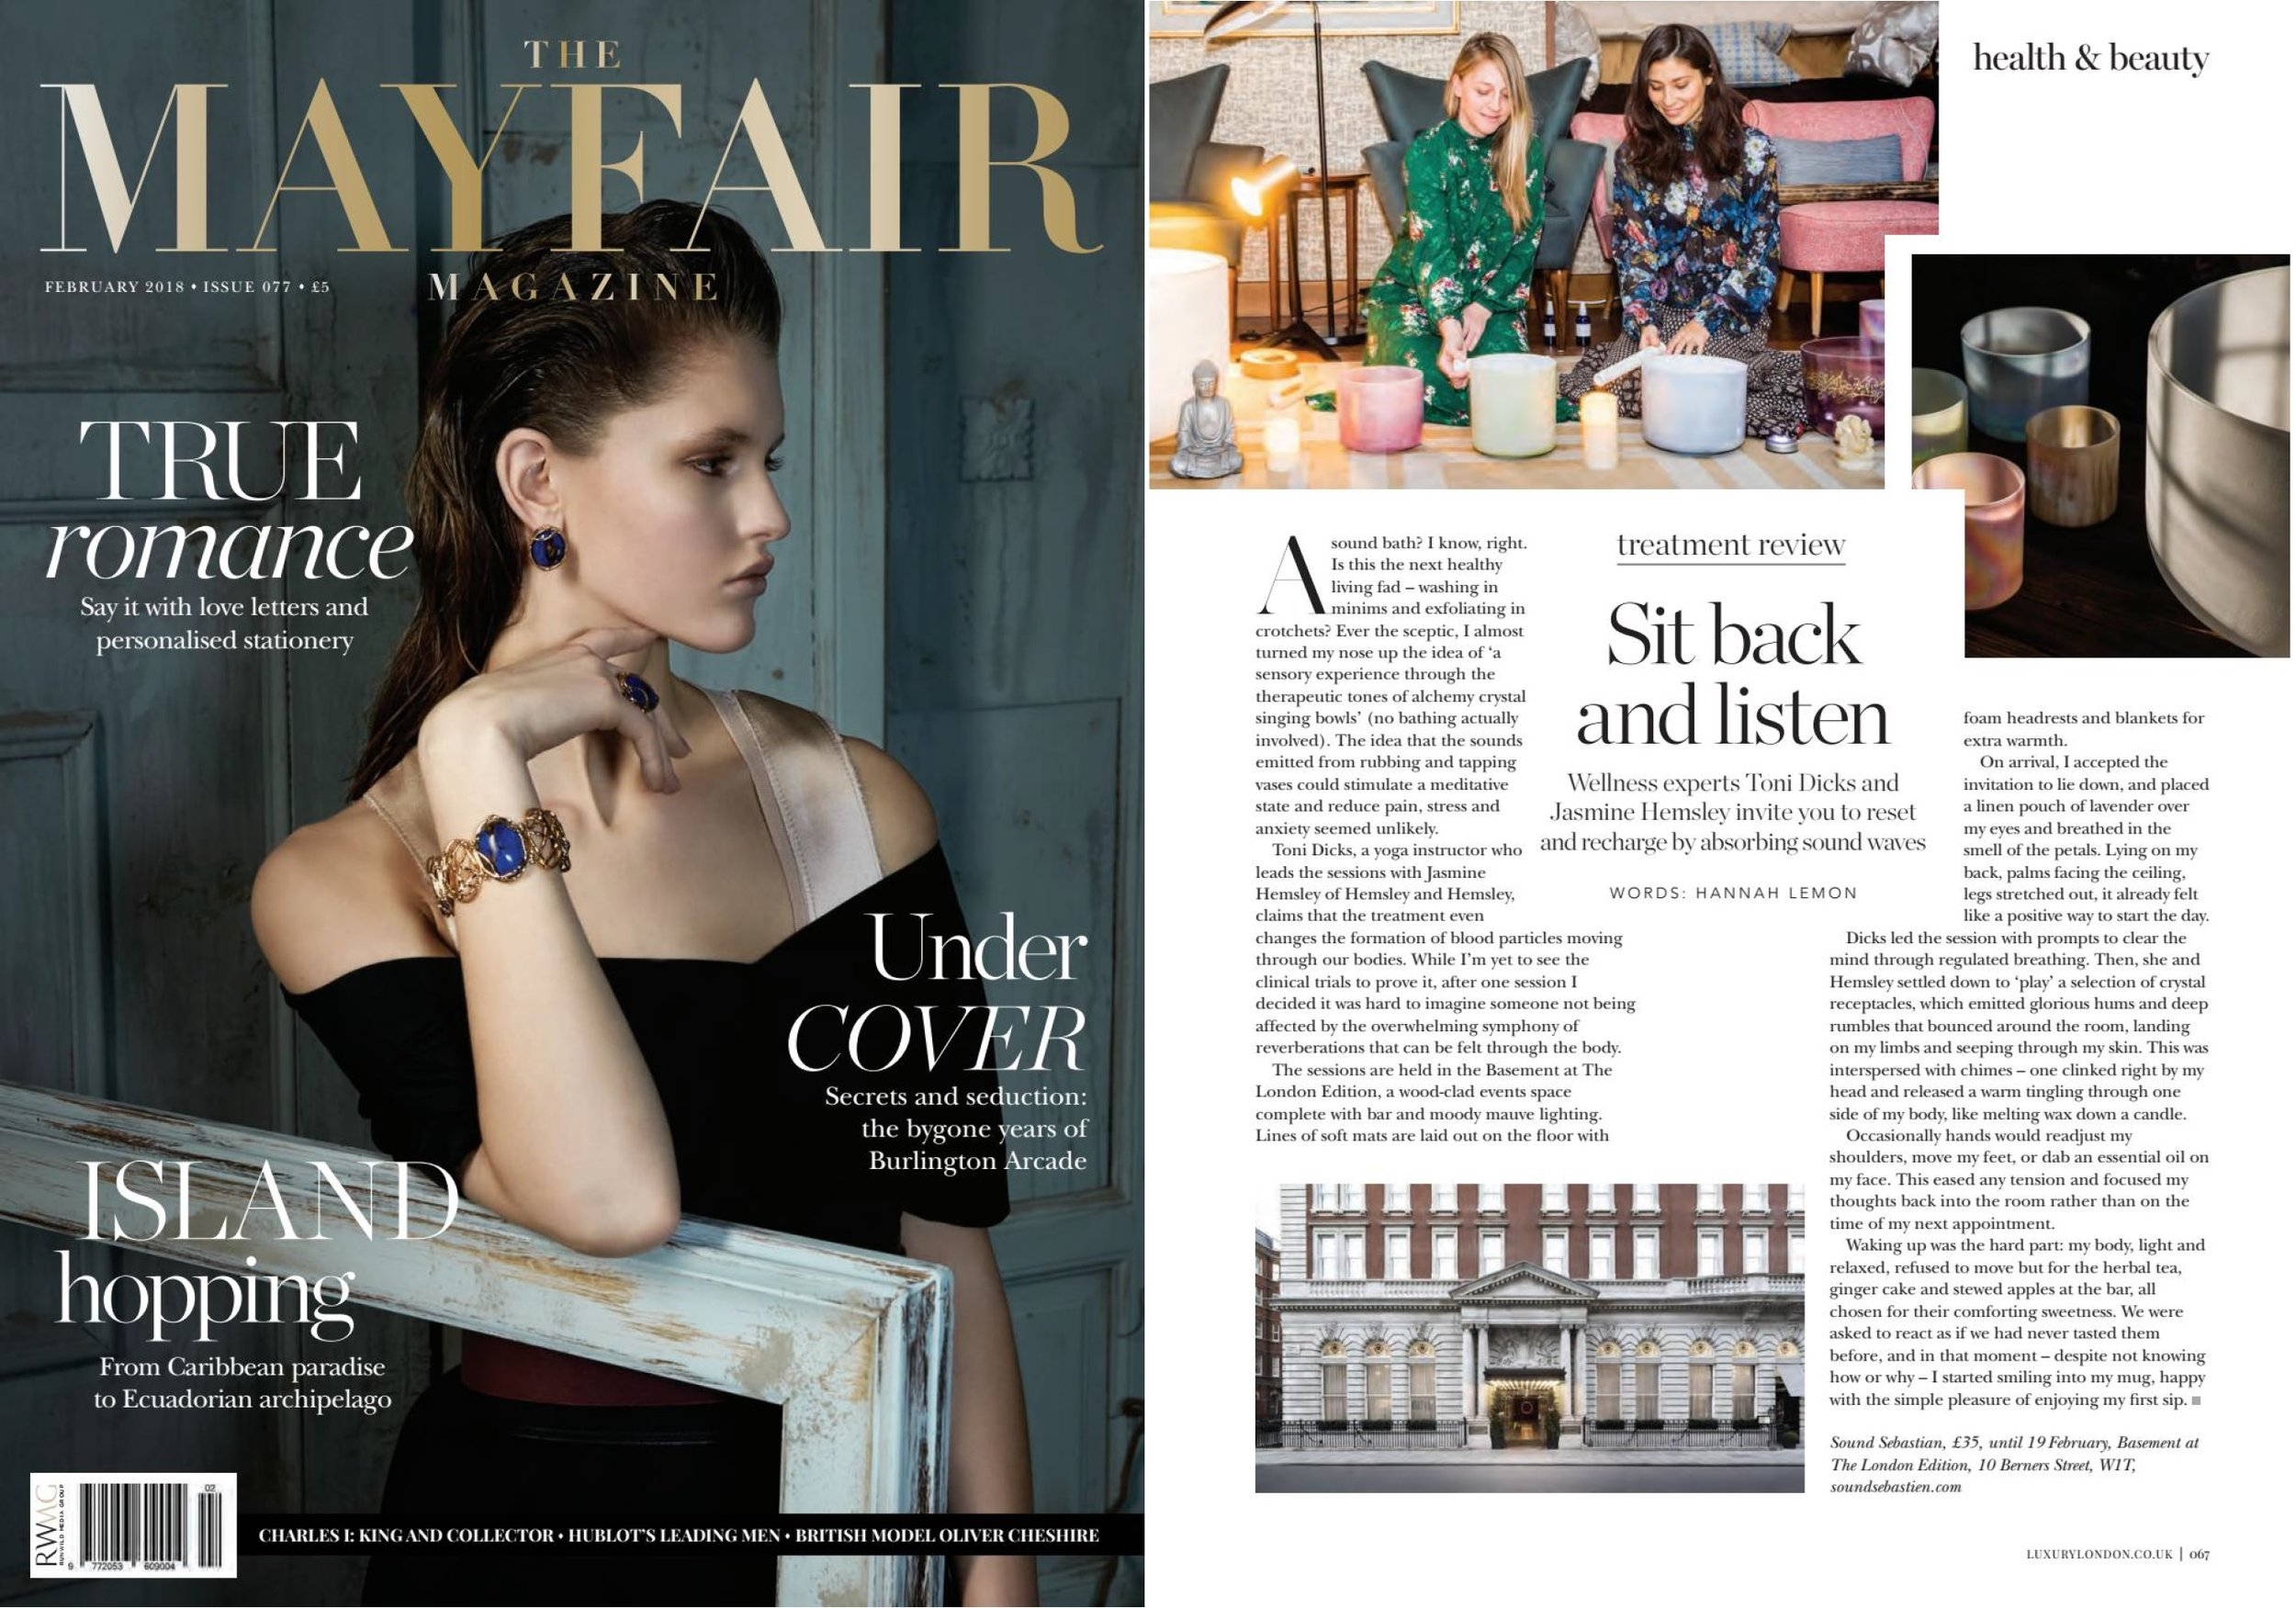 The Mayfair Magazine (UK) February Issue 2018.jpg